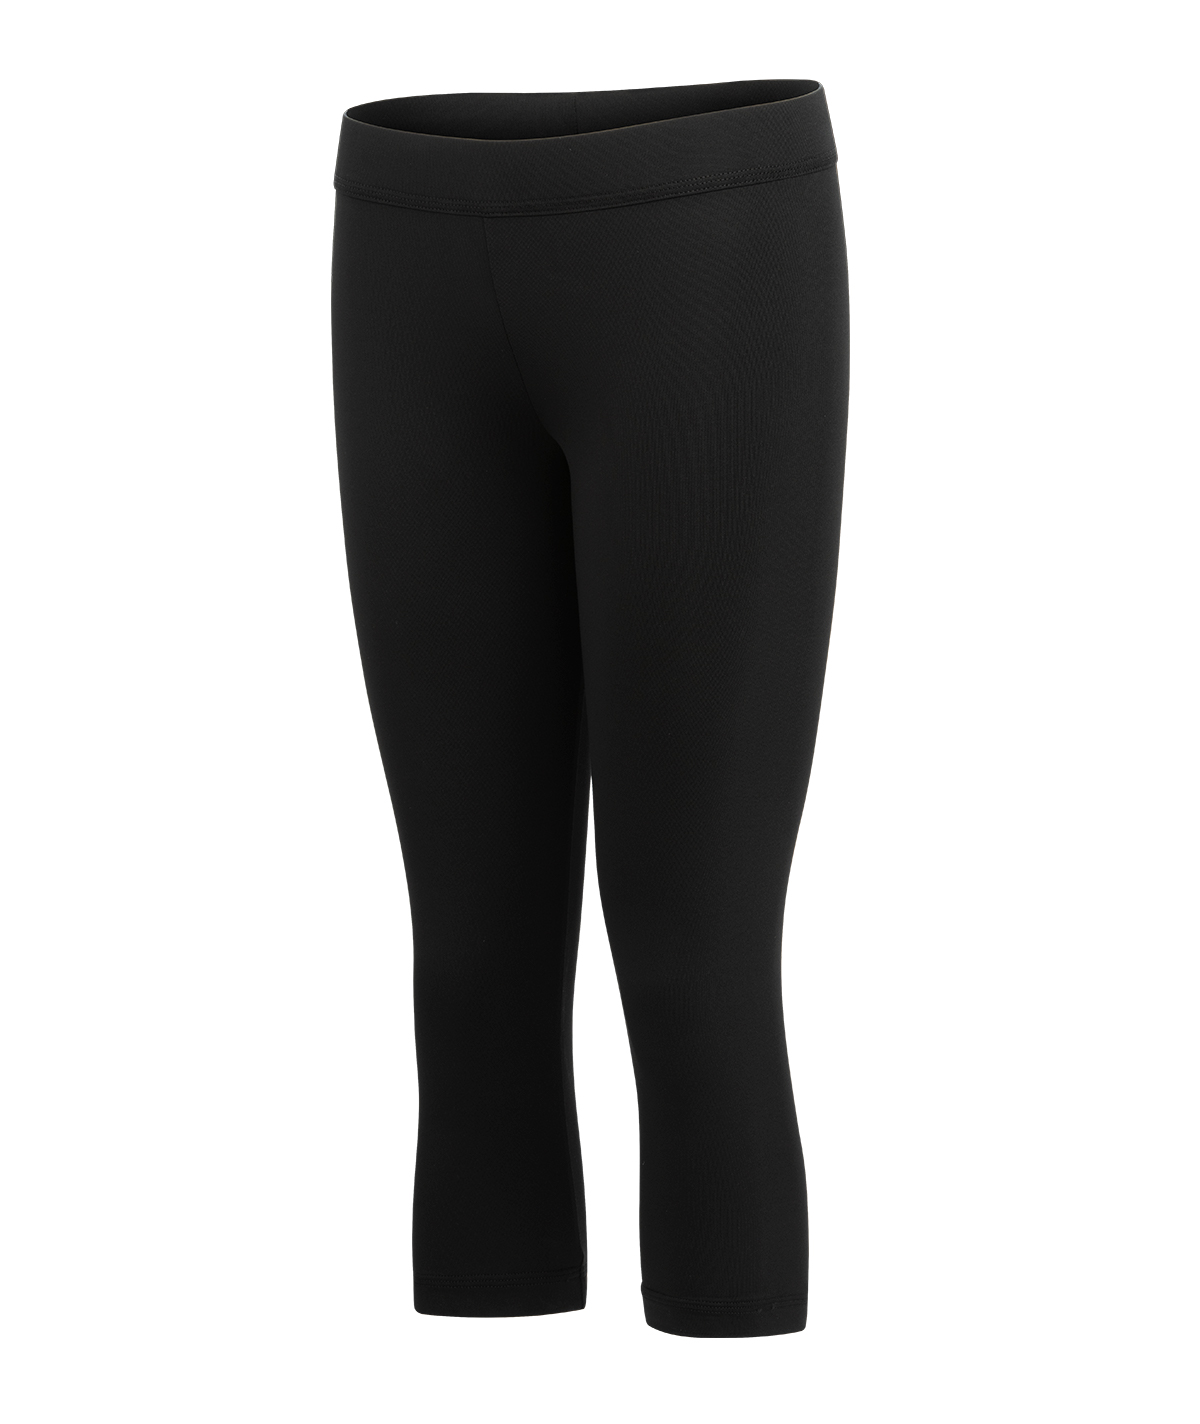 GK All Star Perfect Fit Capris